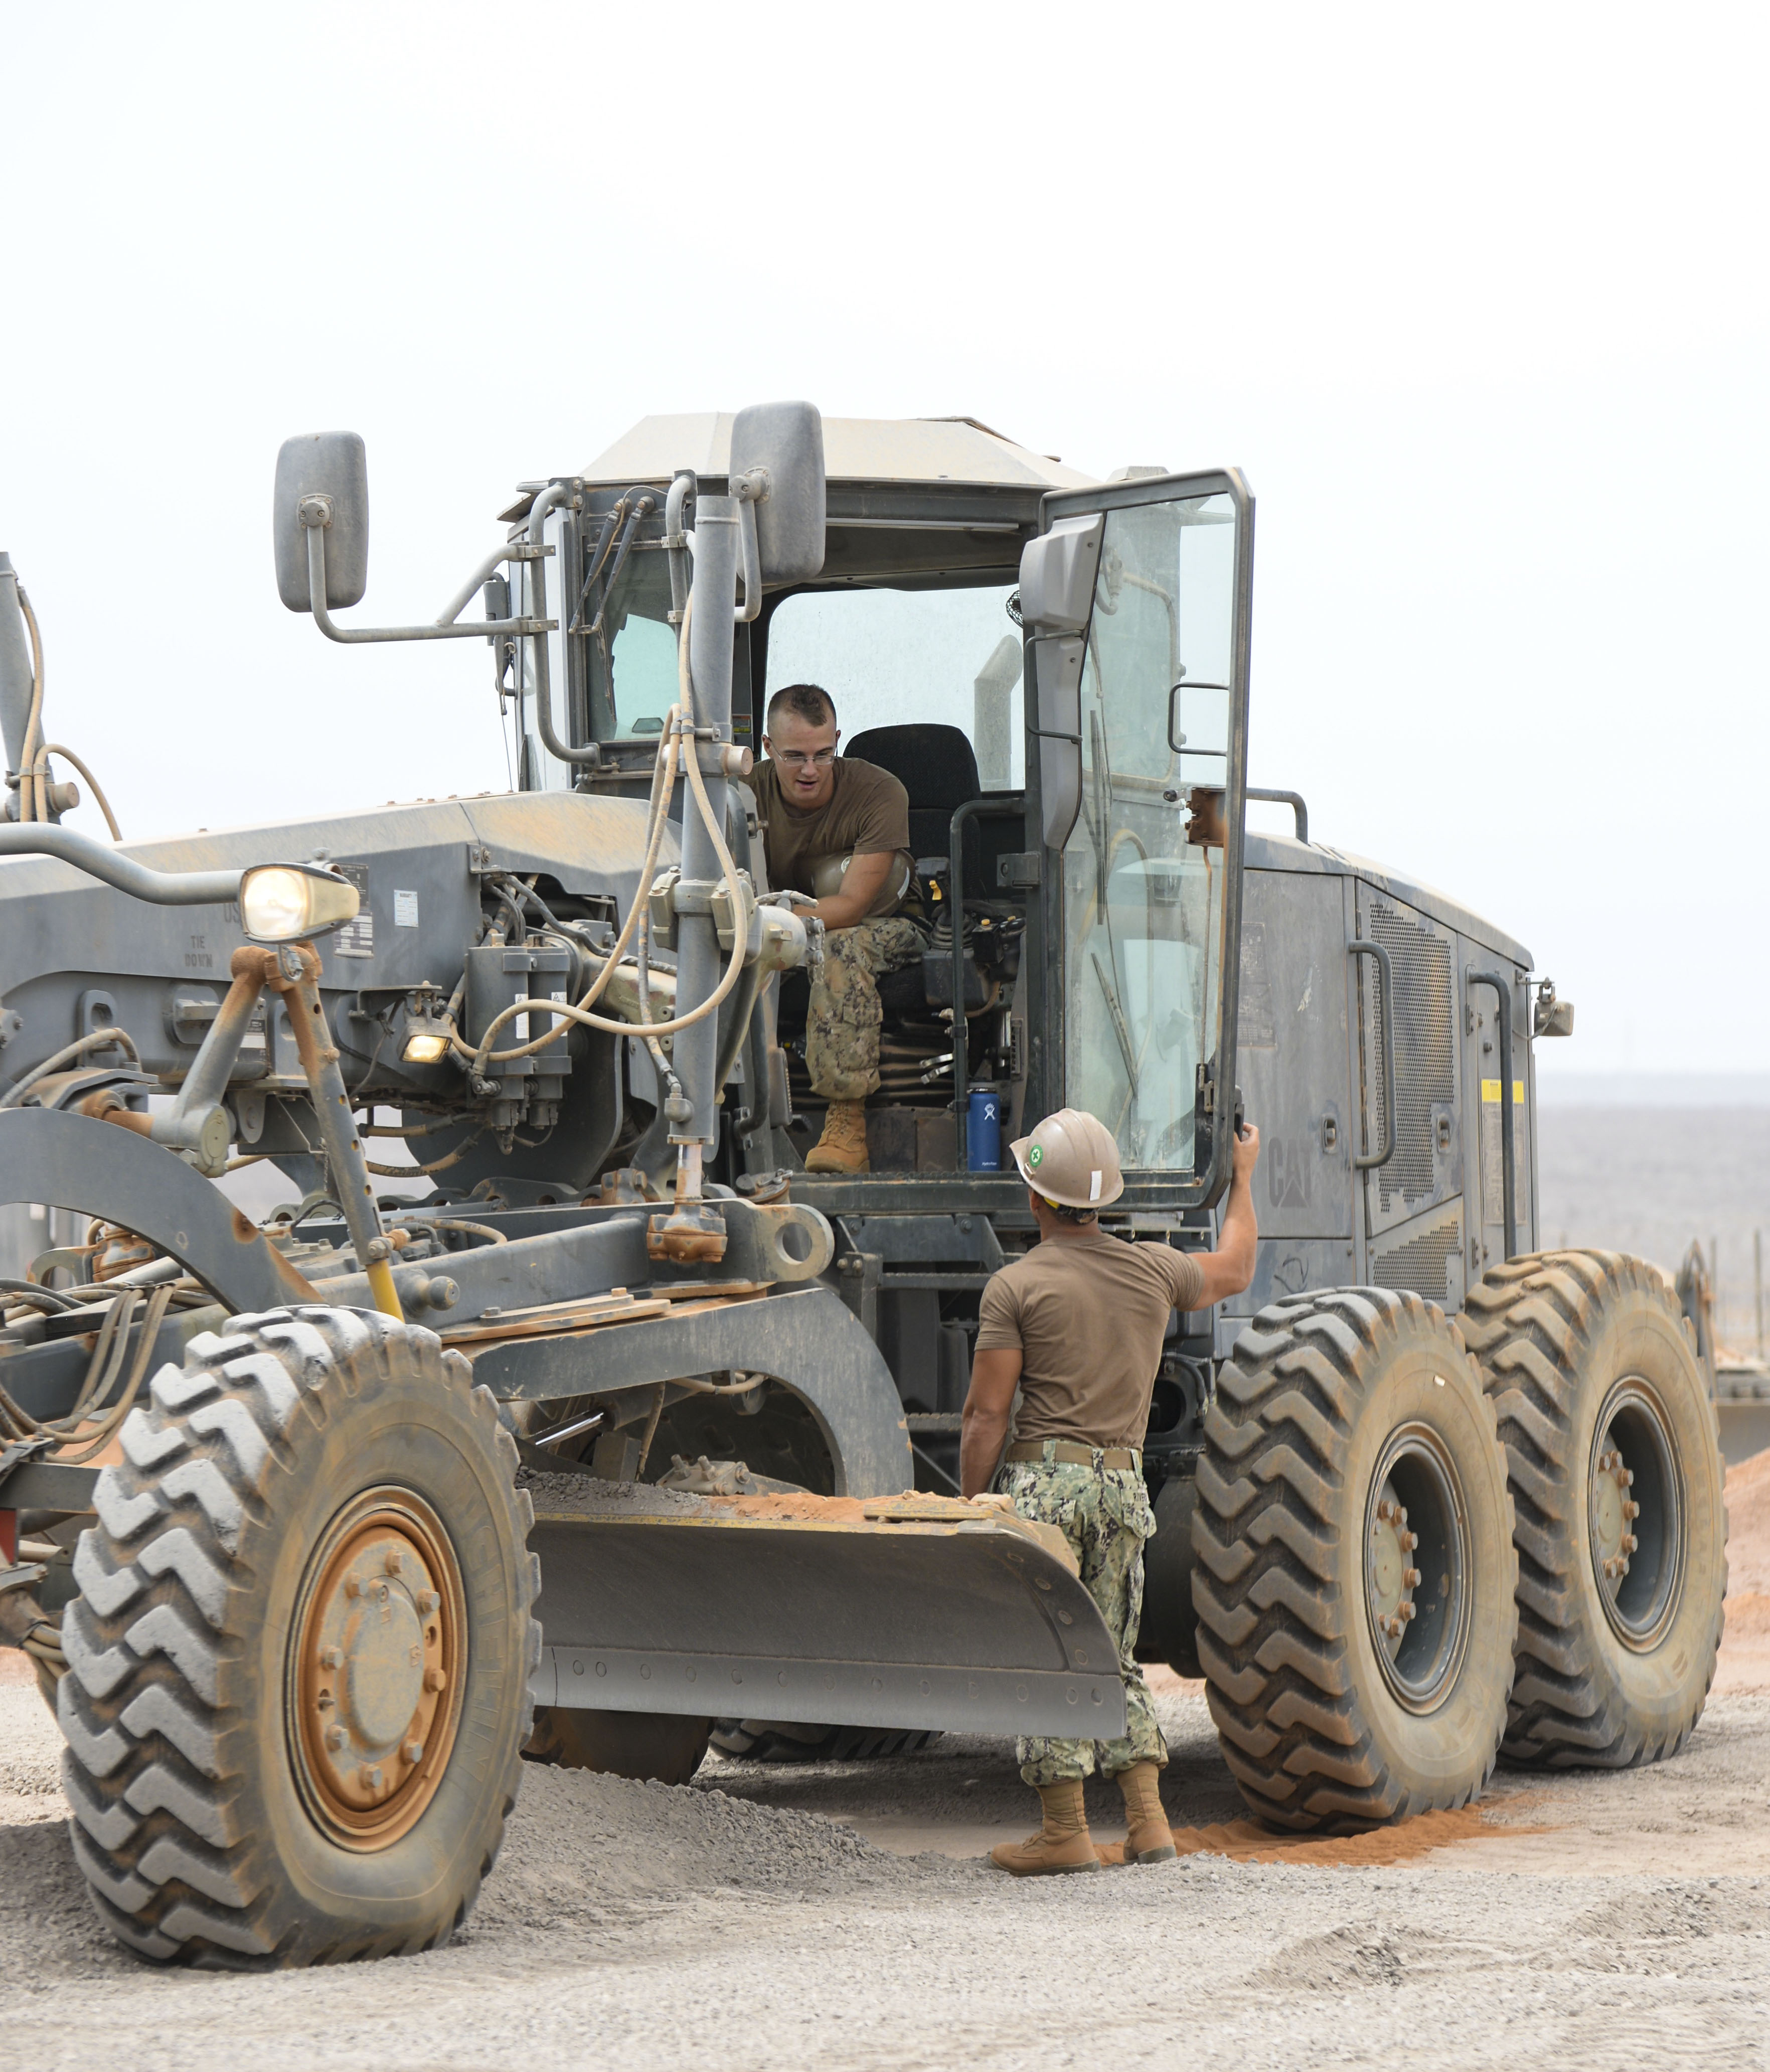 Petty Officer 3rd Class Collins Scheffer, Naval Mobile Construction Battalion 133 heavy equipment operator, left, talks to Petty Officer 2nd Class Christian Rivera, NMCB 22 heavy equipment operator, while operating a grader during construction of a parking pad at a Djibouti airfield, July 28, 2016. The grader is used to evenly spread gravel to a three-inch height during construction. (U.S. Air Force photo by Staff Sgt. Benjamin Raughton/Released)